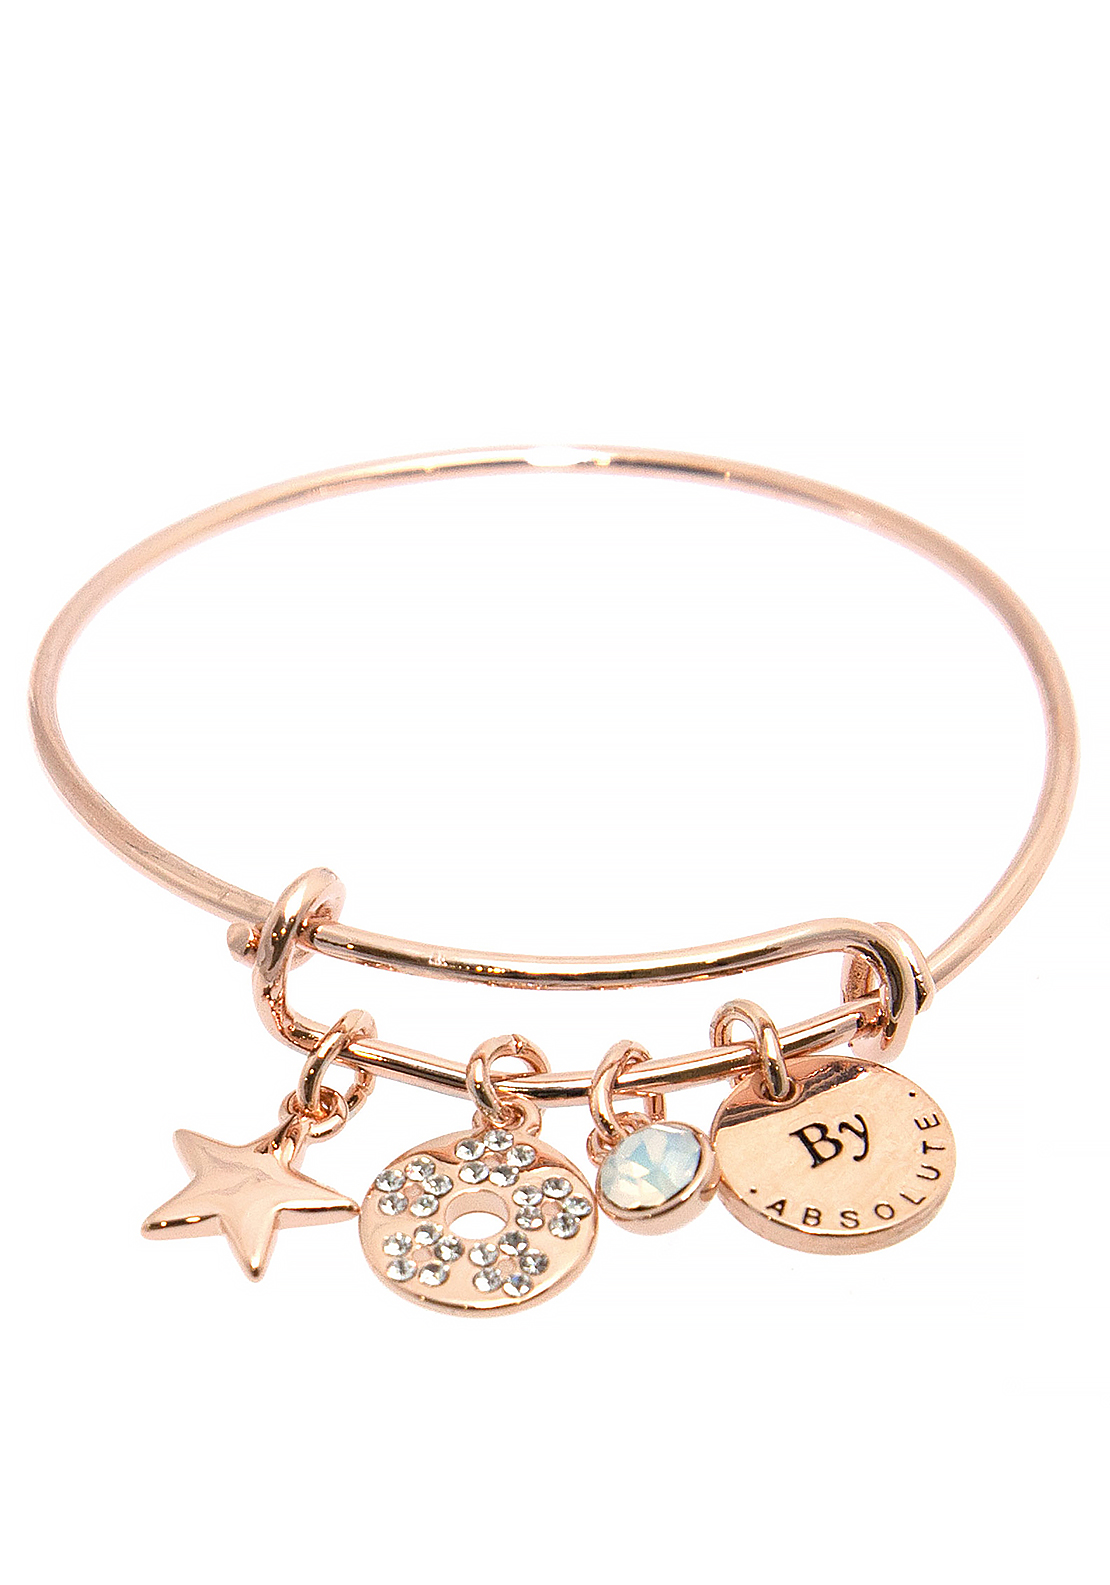 Absolute Jewellery Girls October Charm Bangle, Rose Gold